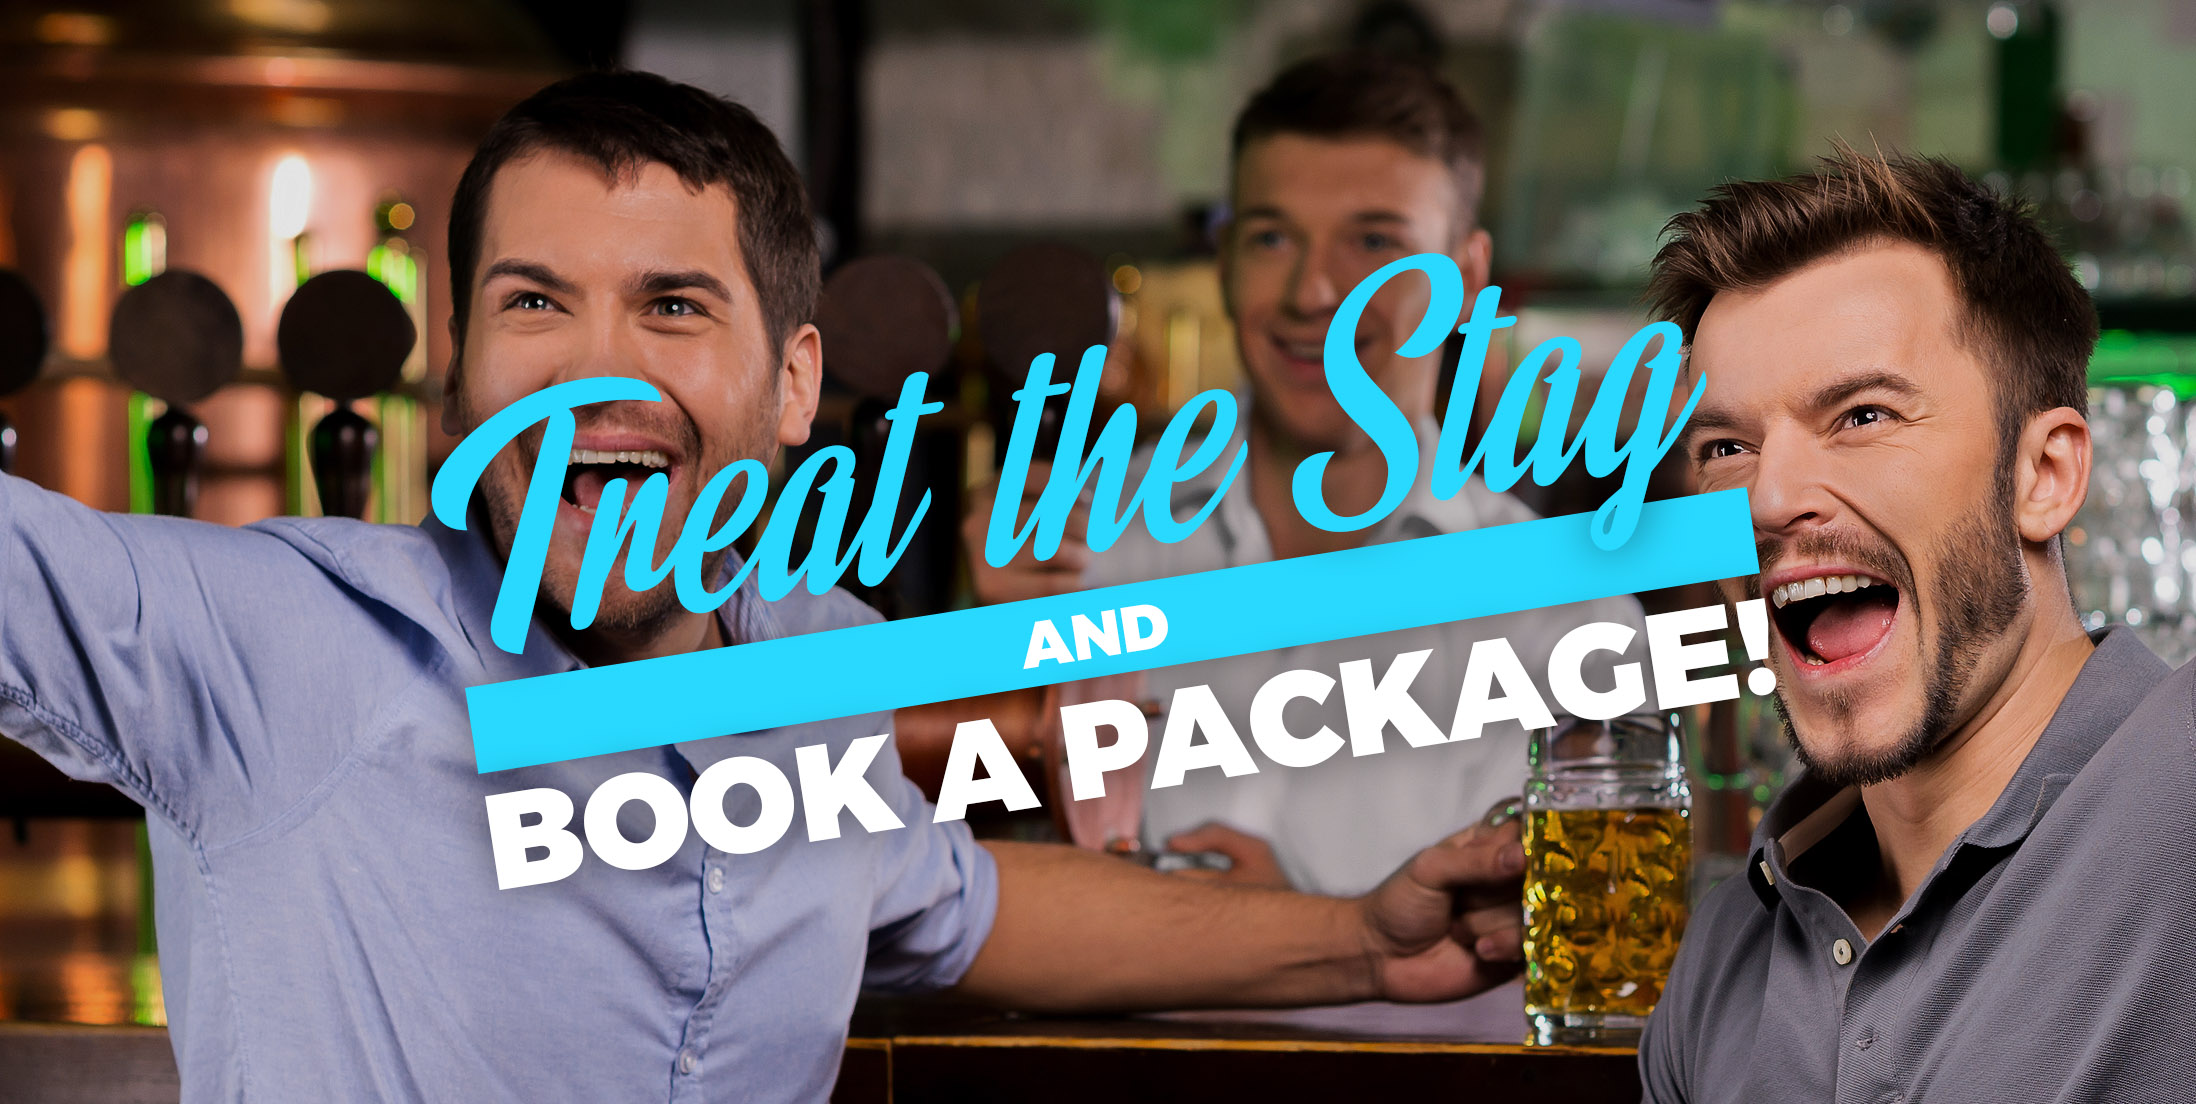 Treat the Stag & Book a Package